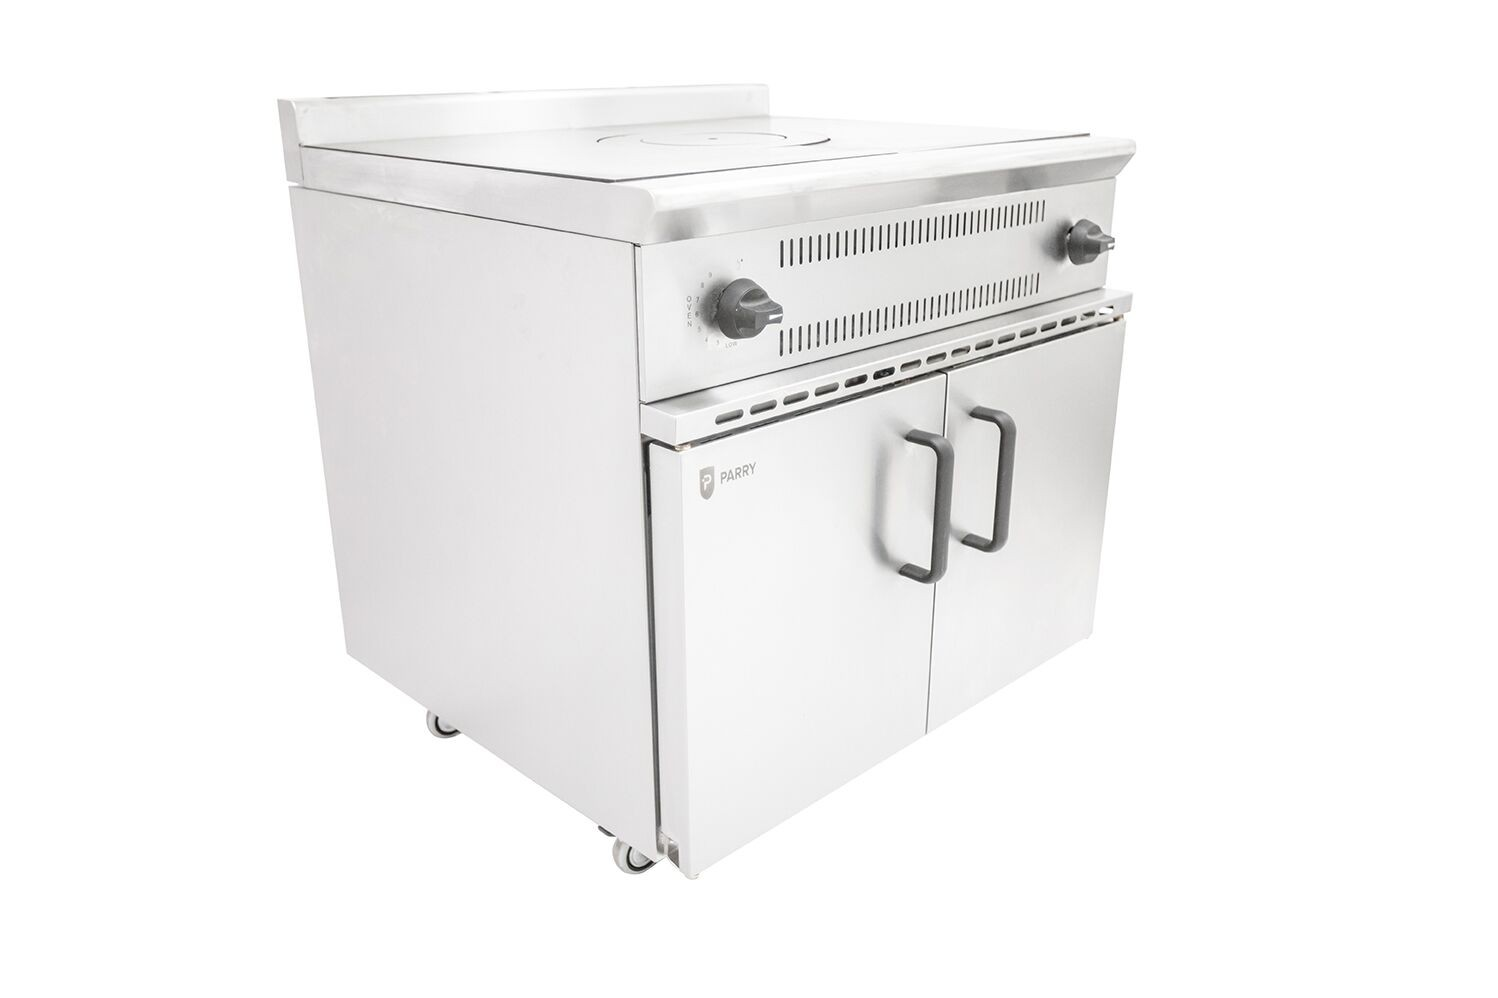 Parry USHO Natual or LPG Gas Solid Top Range with Oven Below